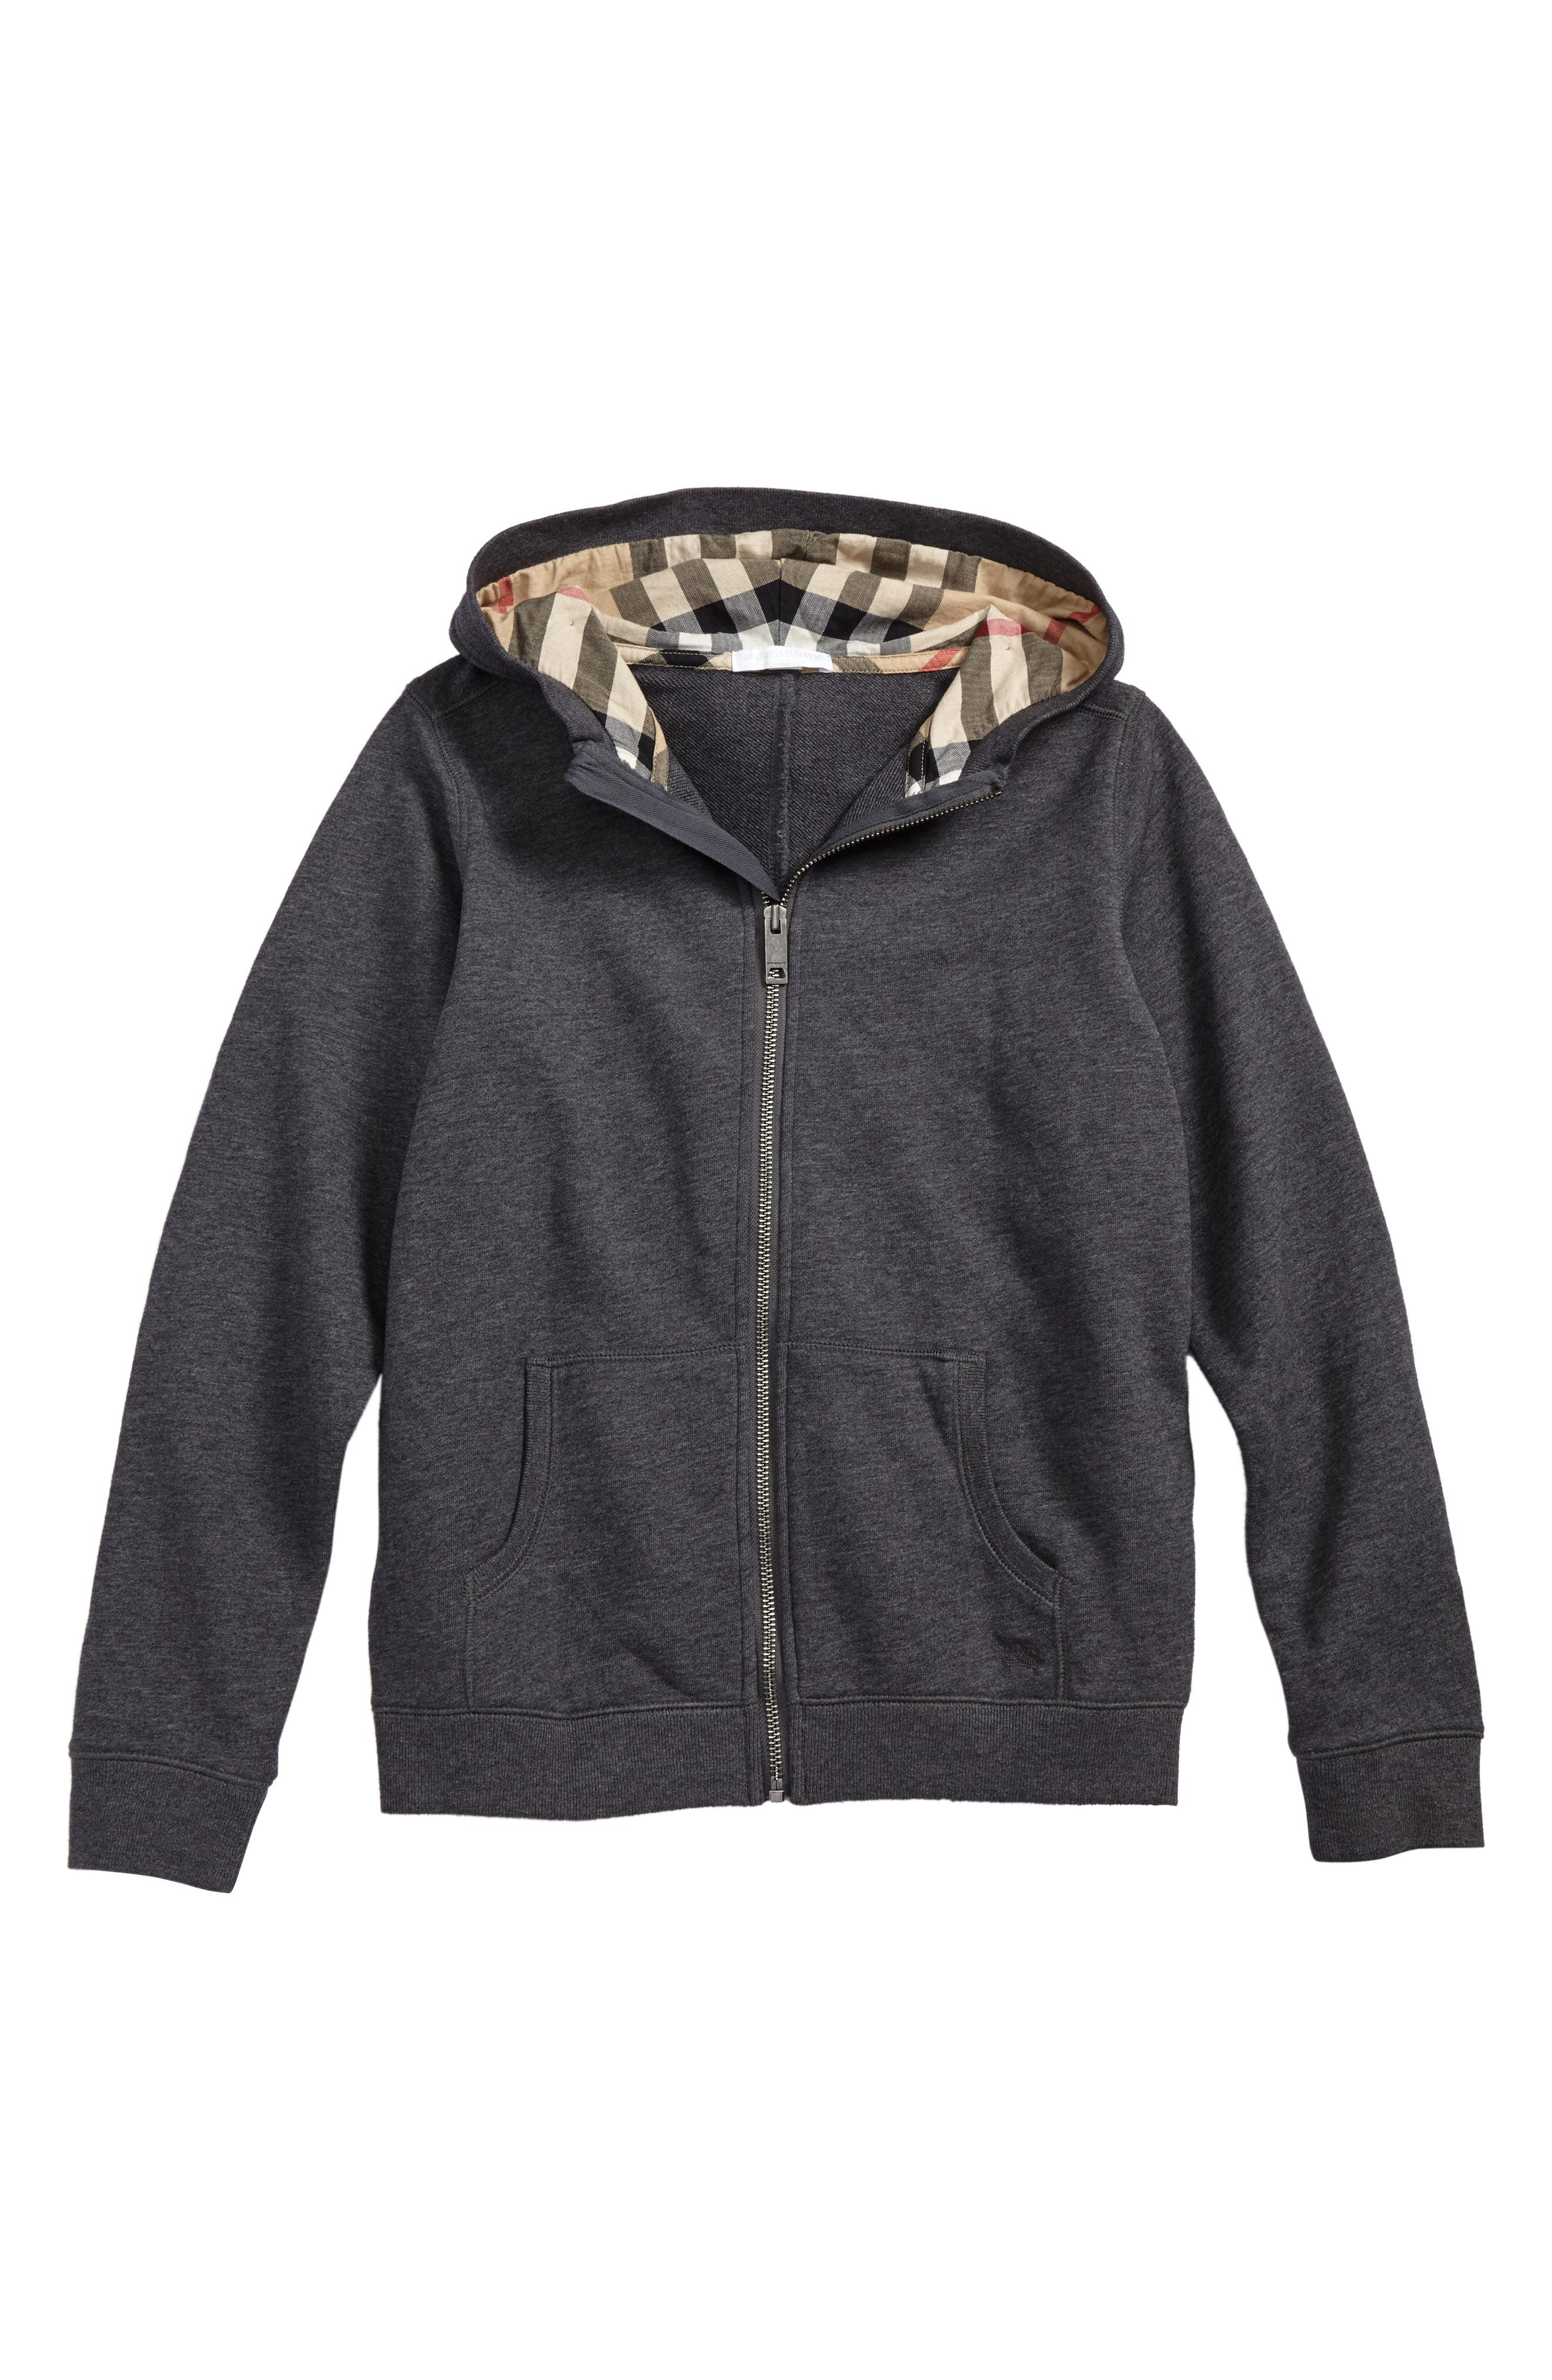 Pearcy Hoodie,                         Main,                         color, 027